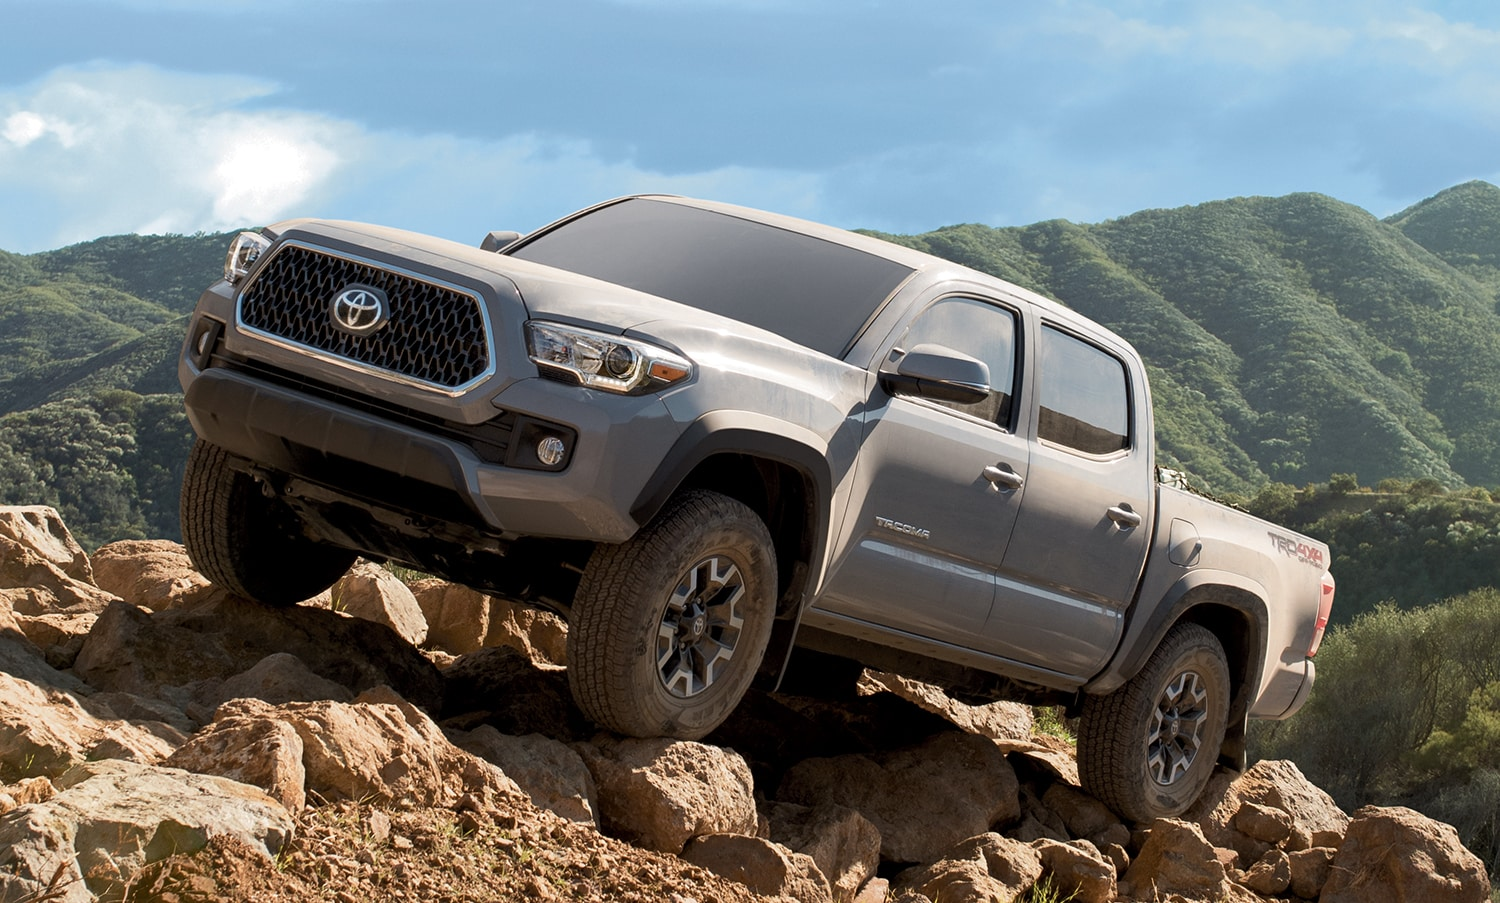 Tacoma off-roading on a rocky hillside